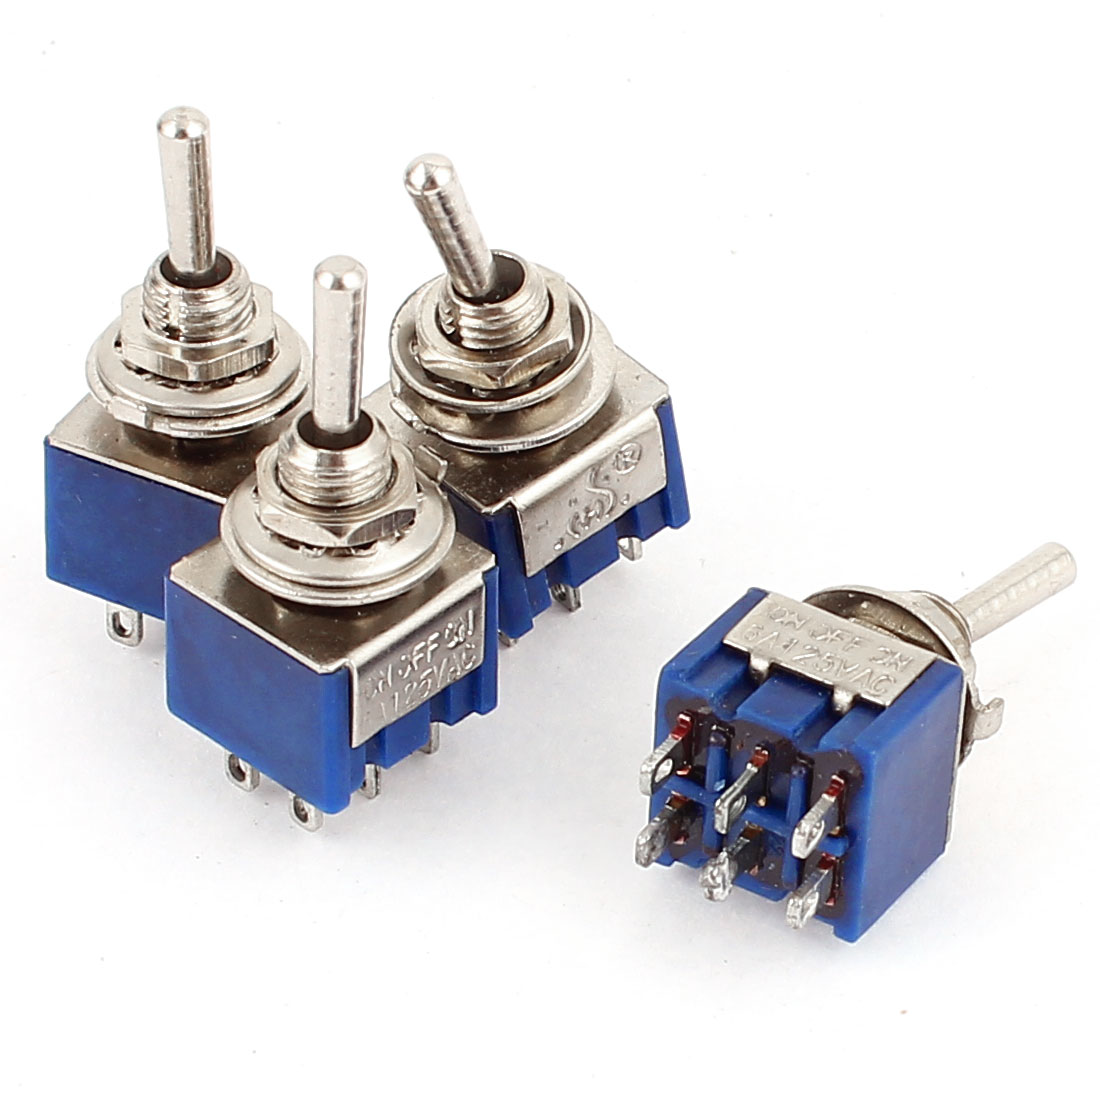 4Pcs AC 125V 6A 3 Position ON-OFF-ON 6 Pin Toggle Switch Blue